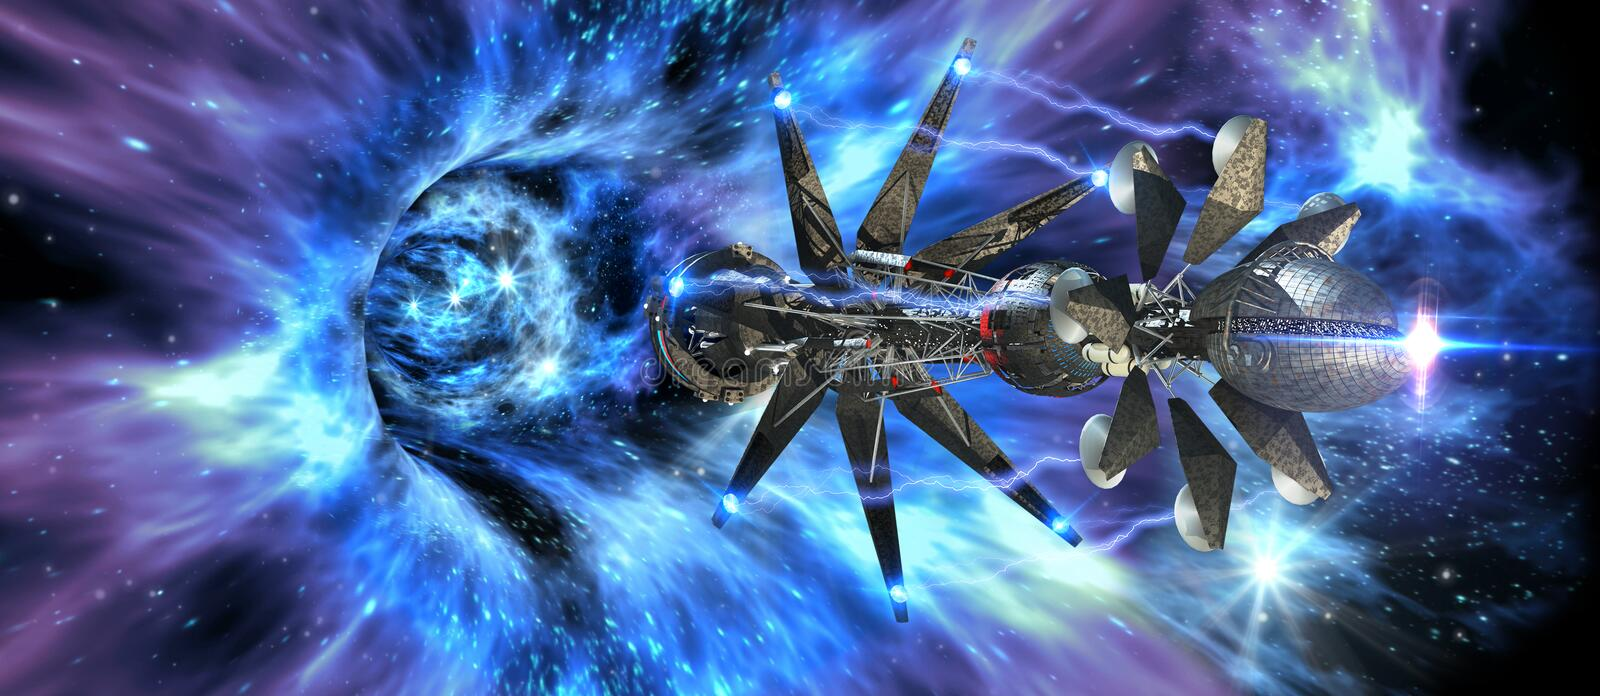 Interstellar spaceship entering a wormhole. Futuristic interstellar spacecraft entering a wormhole, for alien fantasy games or science fiction backgrounds of vector illustration